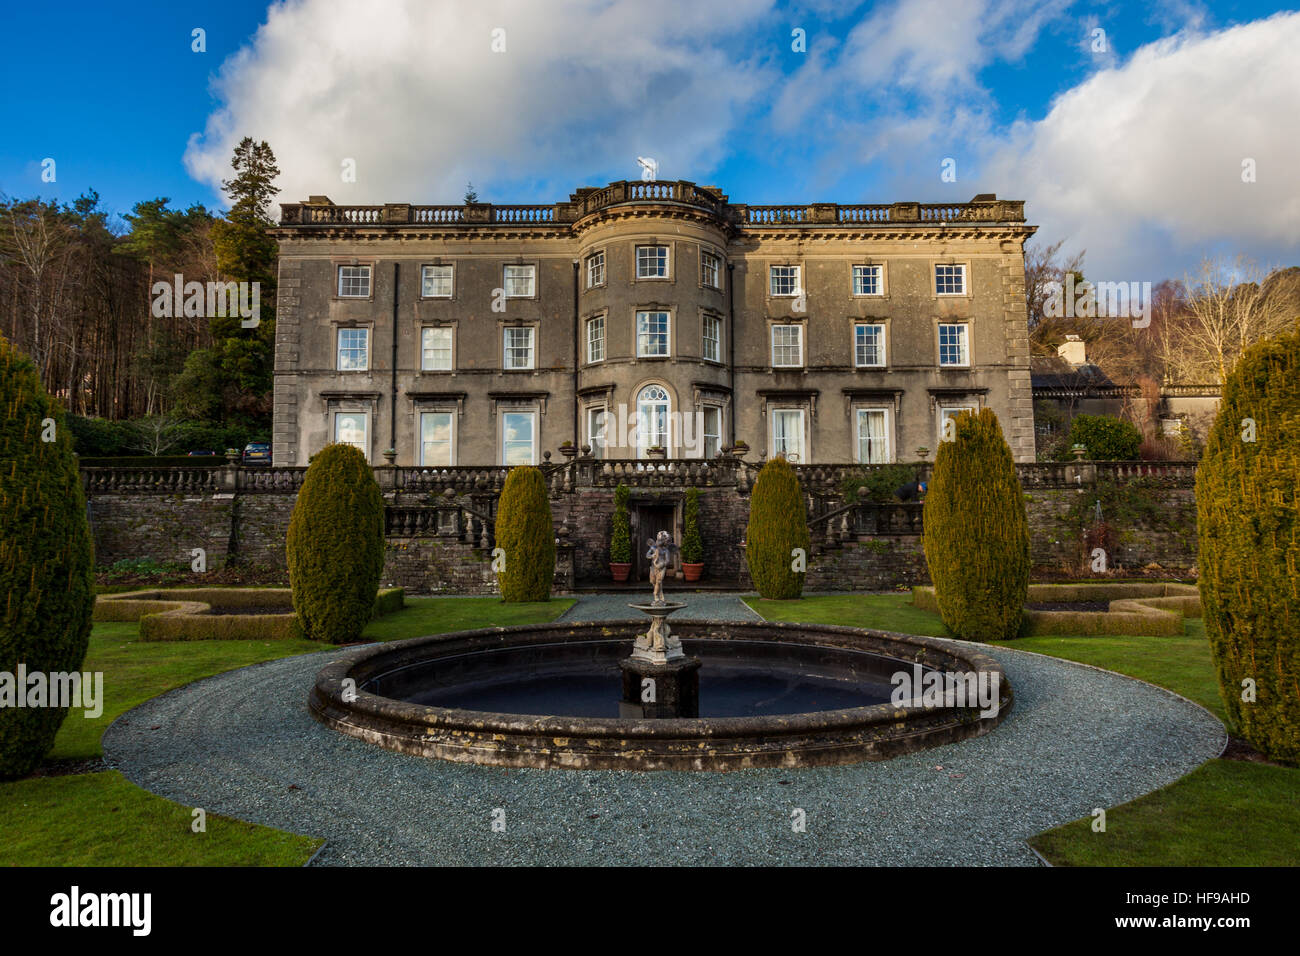 Rydal Hall Stock Photos & Rydal Hall Stock Images - Alamy